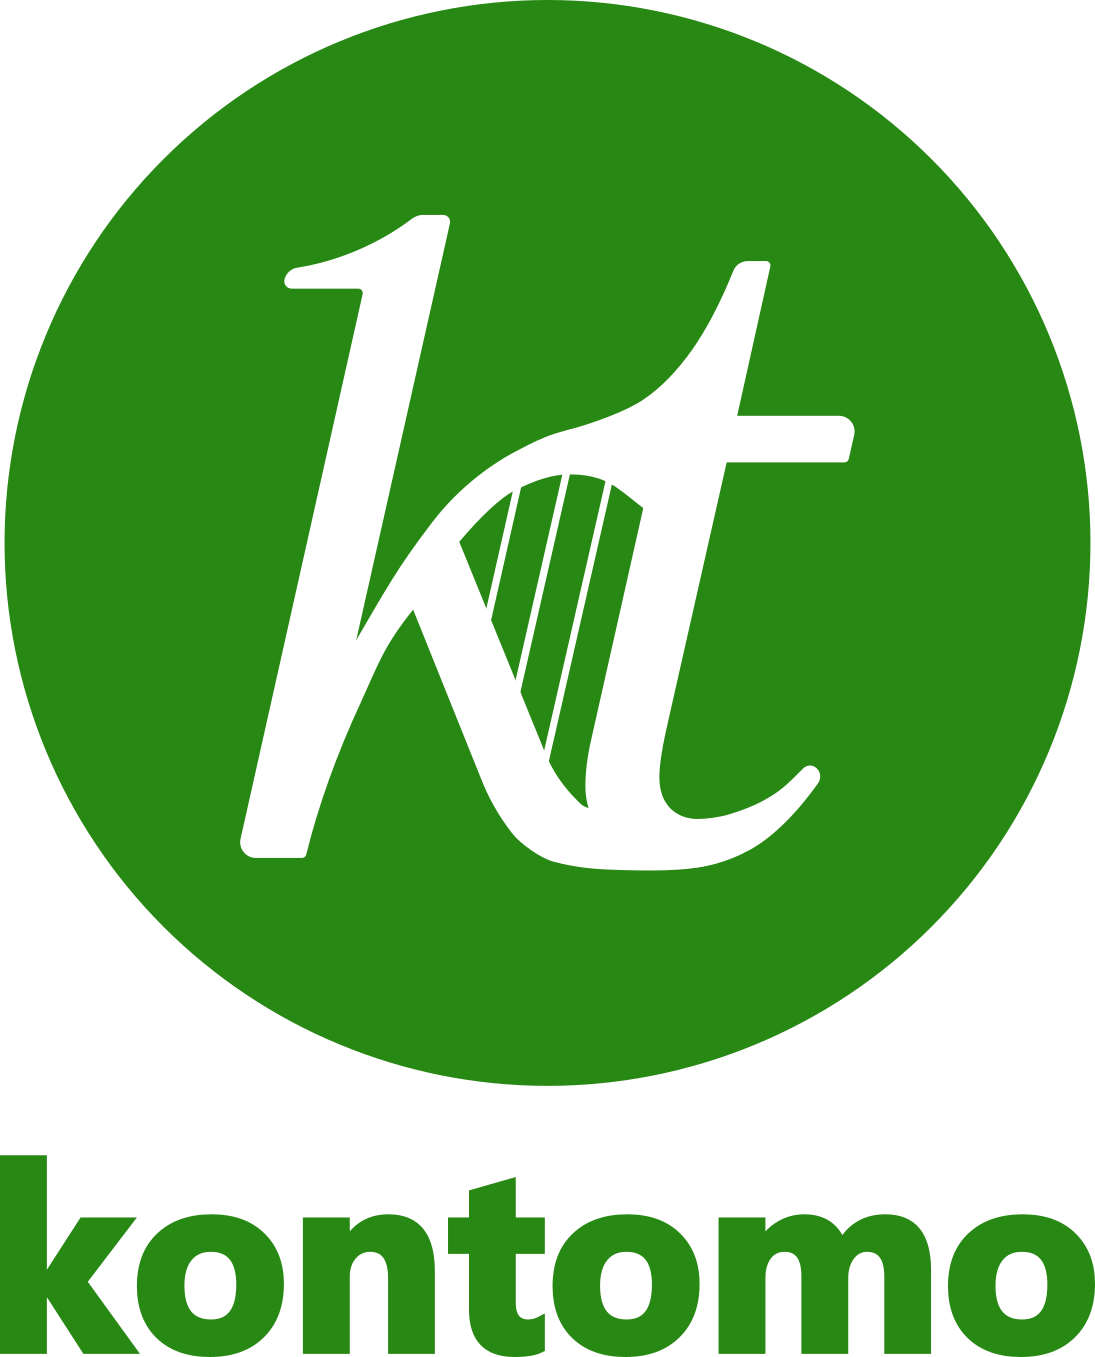 kontomo_logo_main_variant_w_wordmark_J4_lighter_green_78-190-78